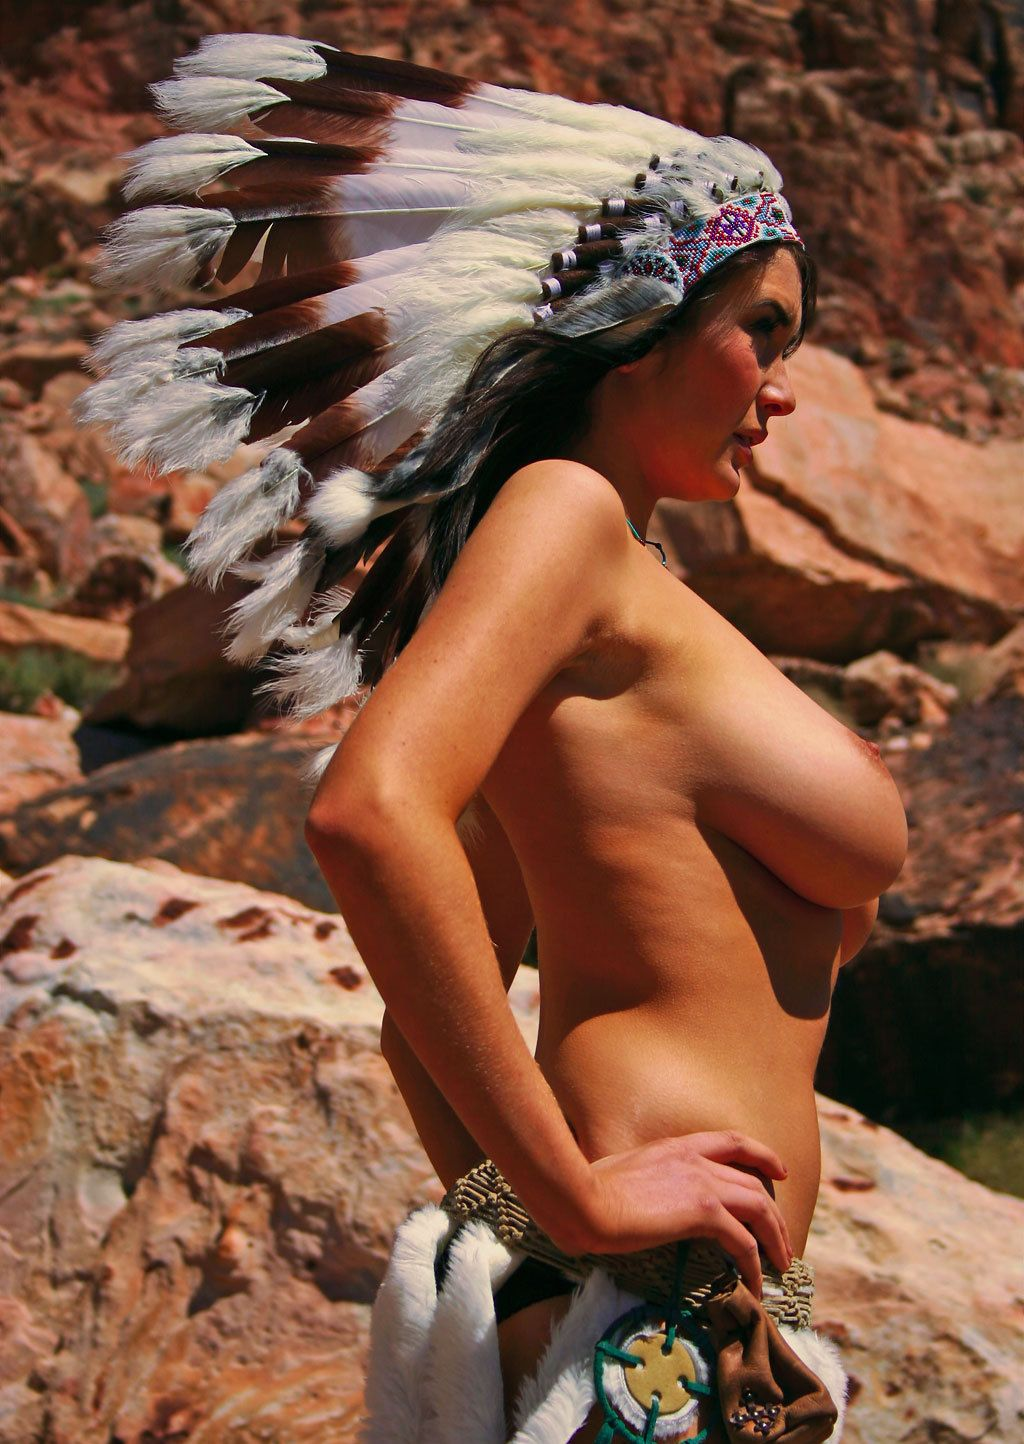 American indian naked girls, naked girl having srx